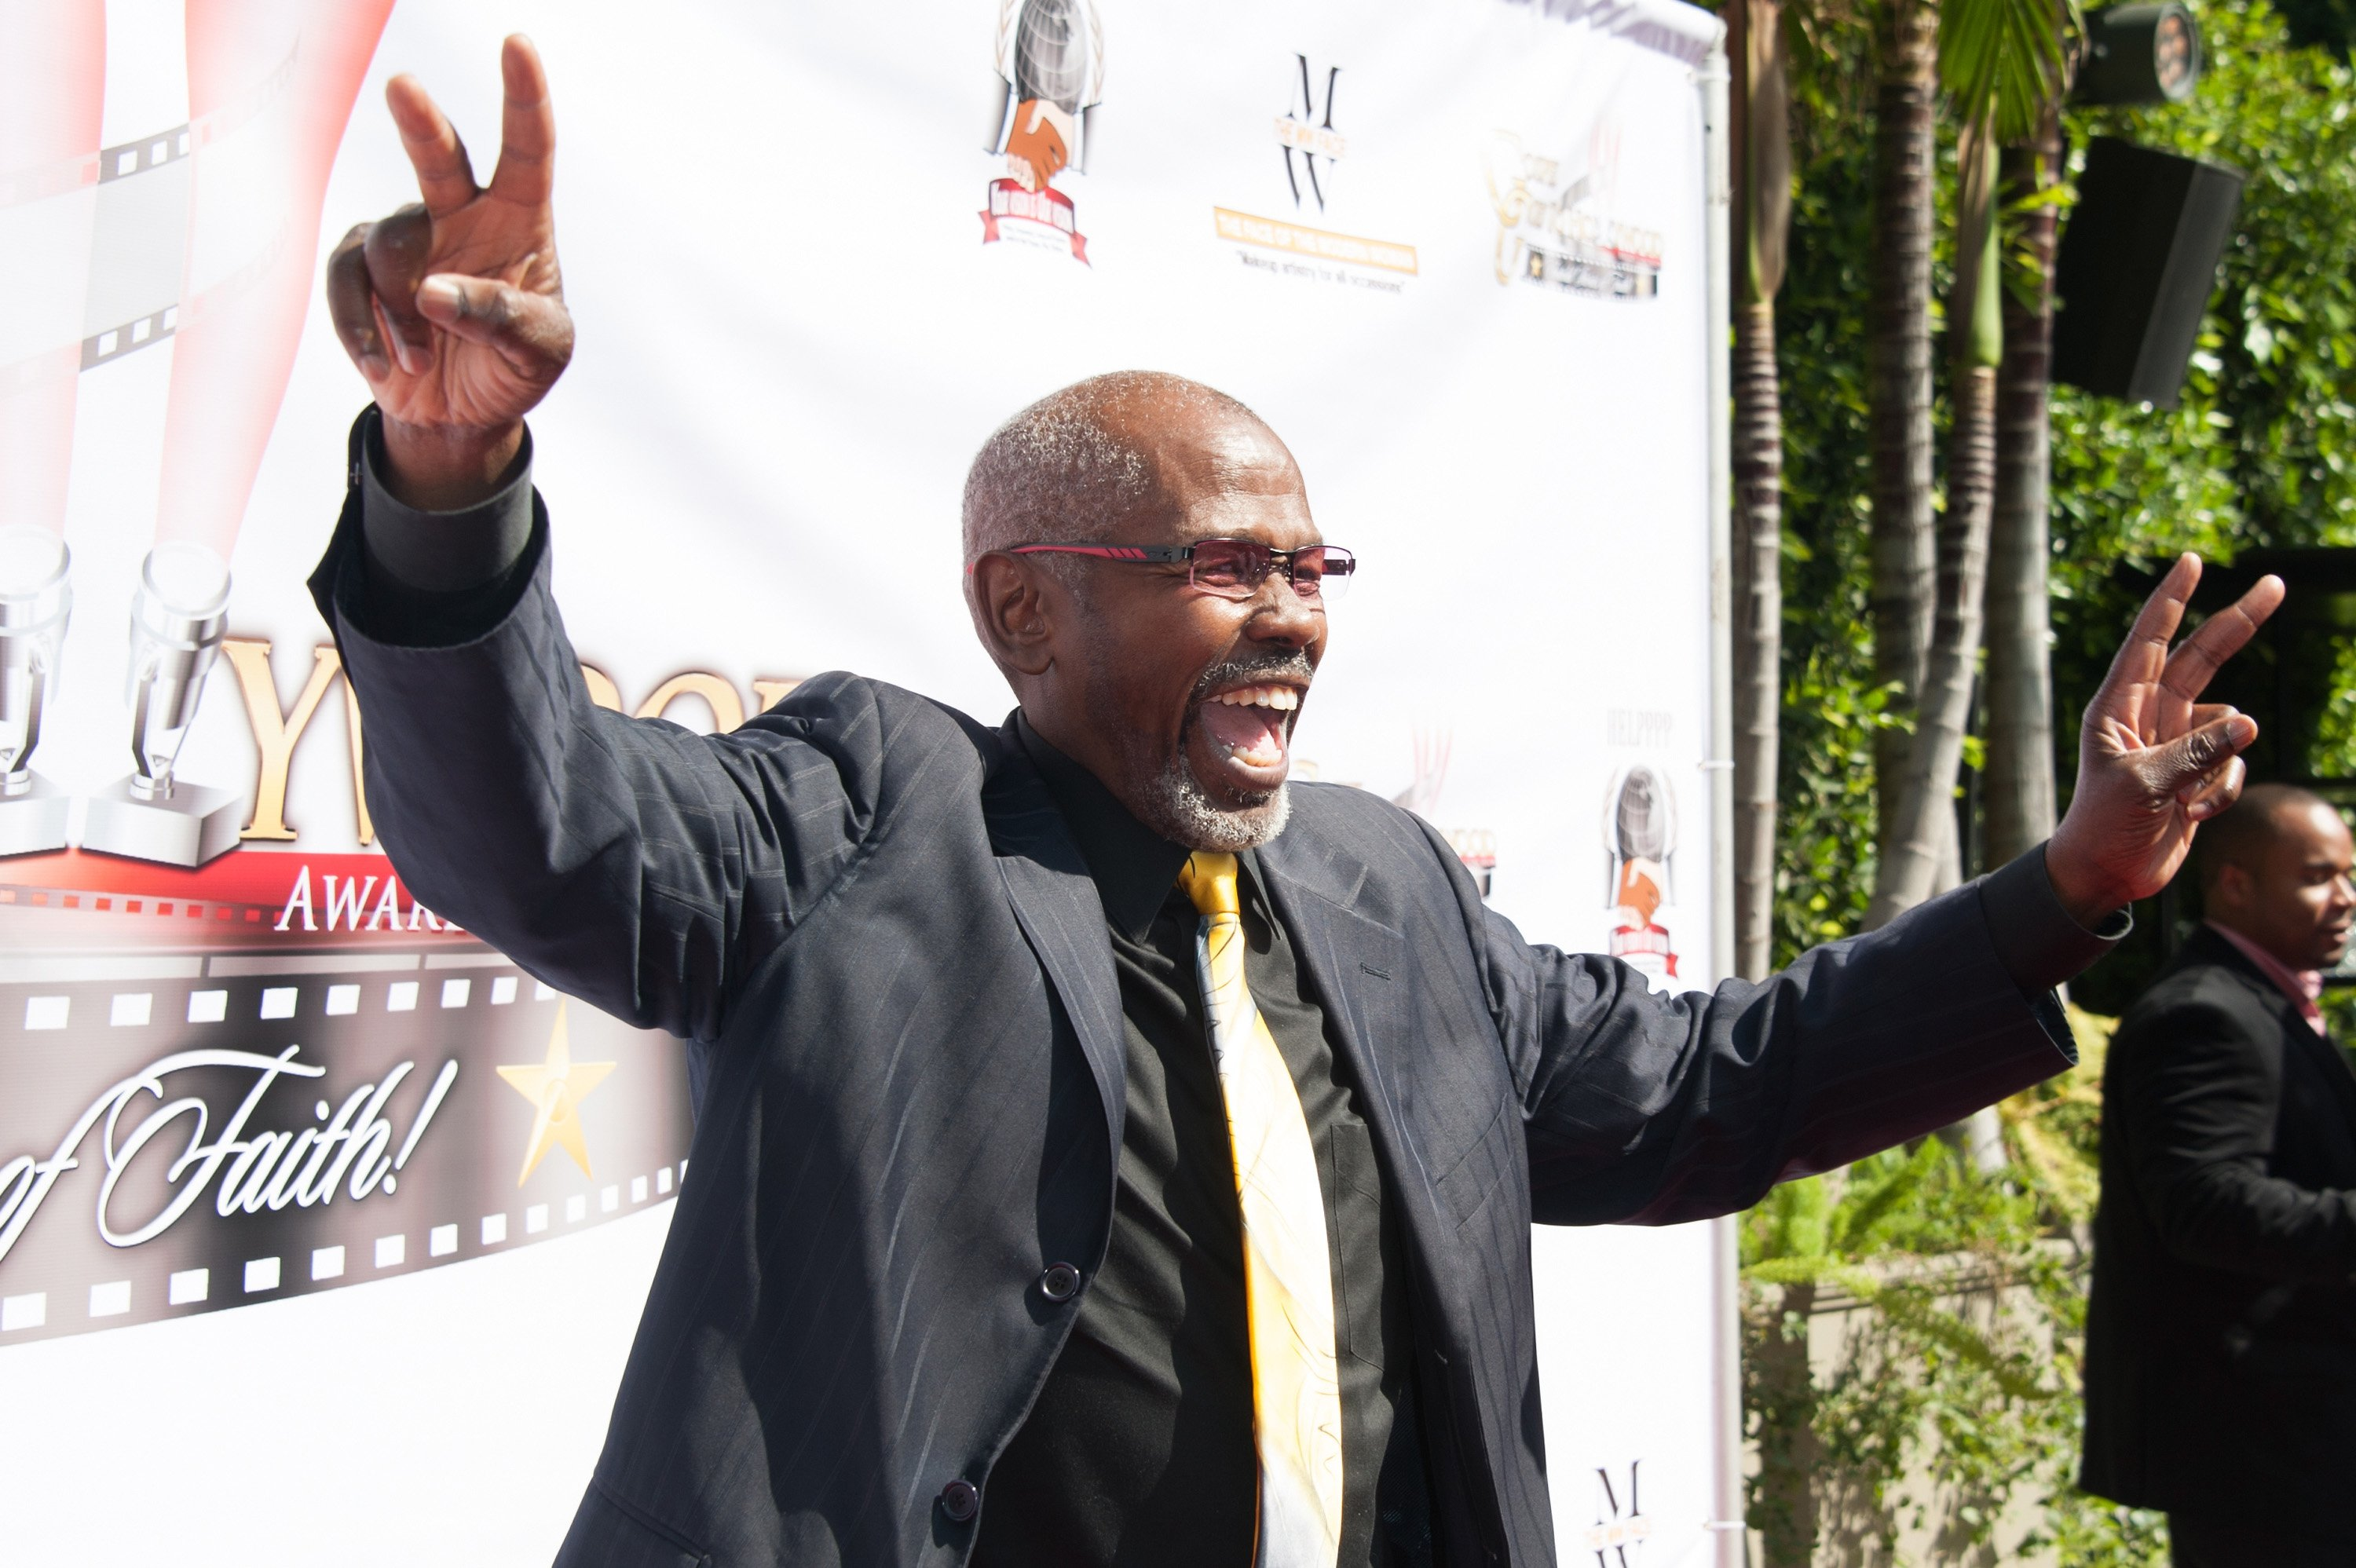 Actor Ernest Lee Thomas arrives at the Gospel Goes To Hollywood event at the Vibiana on February 26, 2016. | Photo: Getty Images